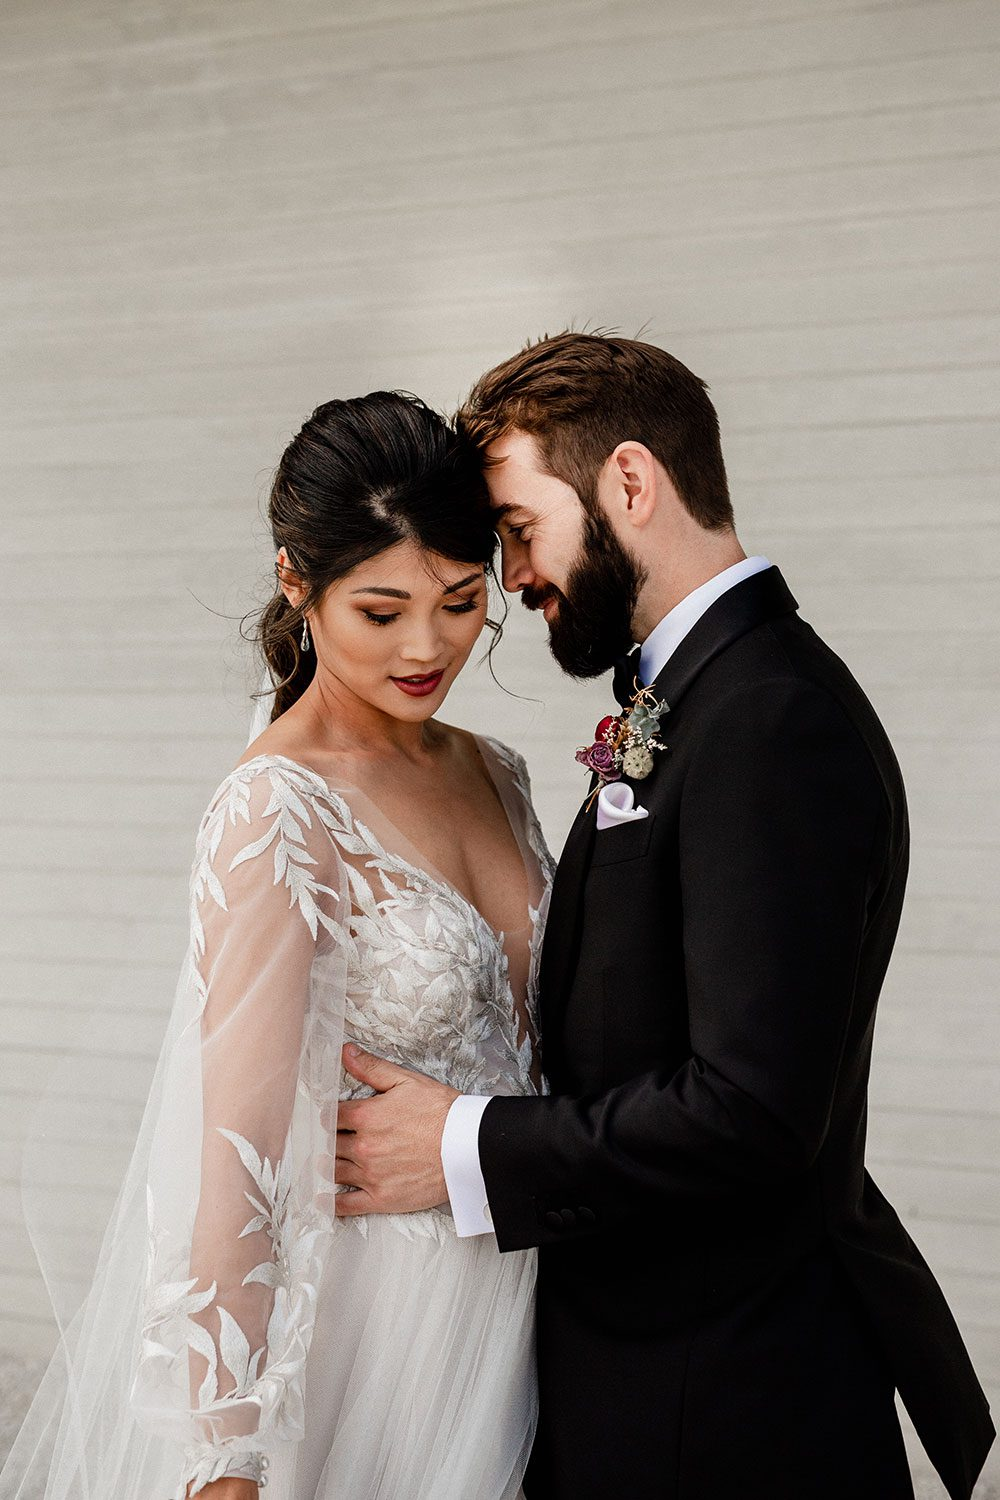 Bride wearing bespoke designer wedding dress by Vinka Bridal Boutique NZ, adorned with delicate applique lace and puffed sleeves - embrace at wall